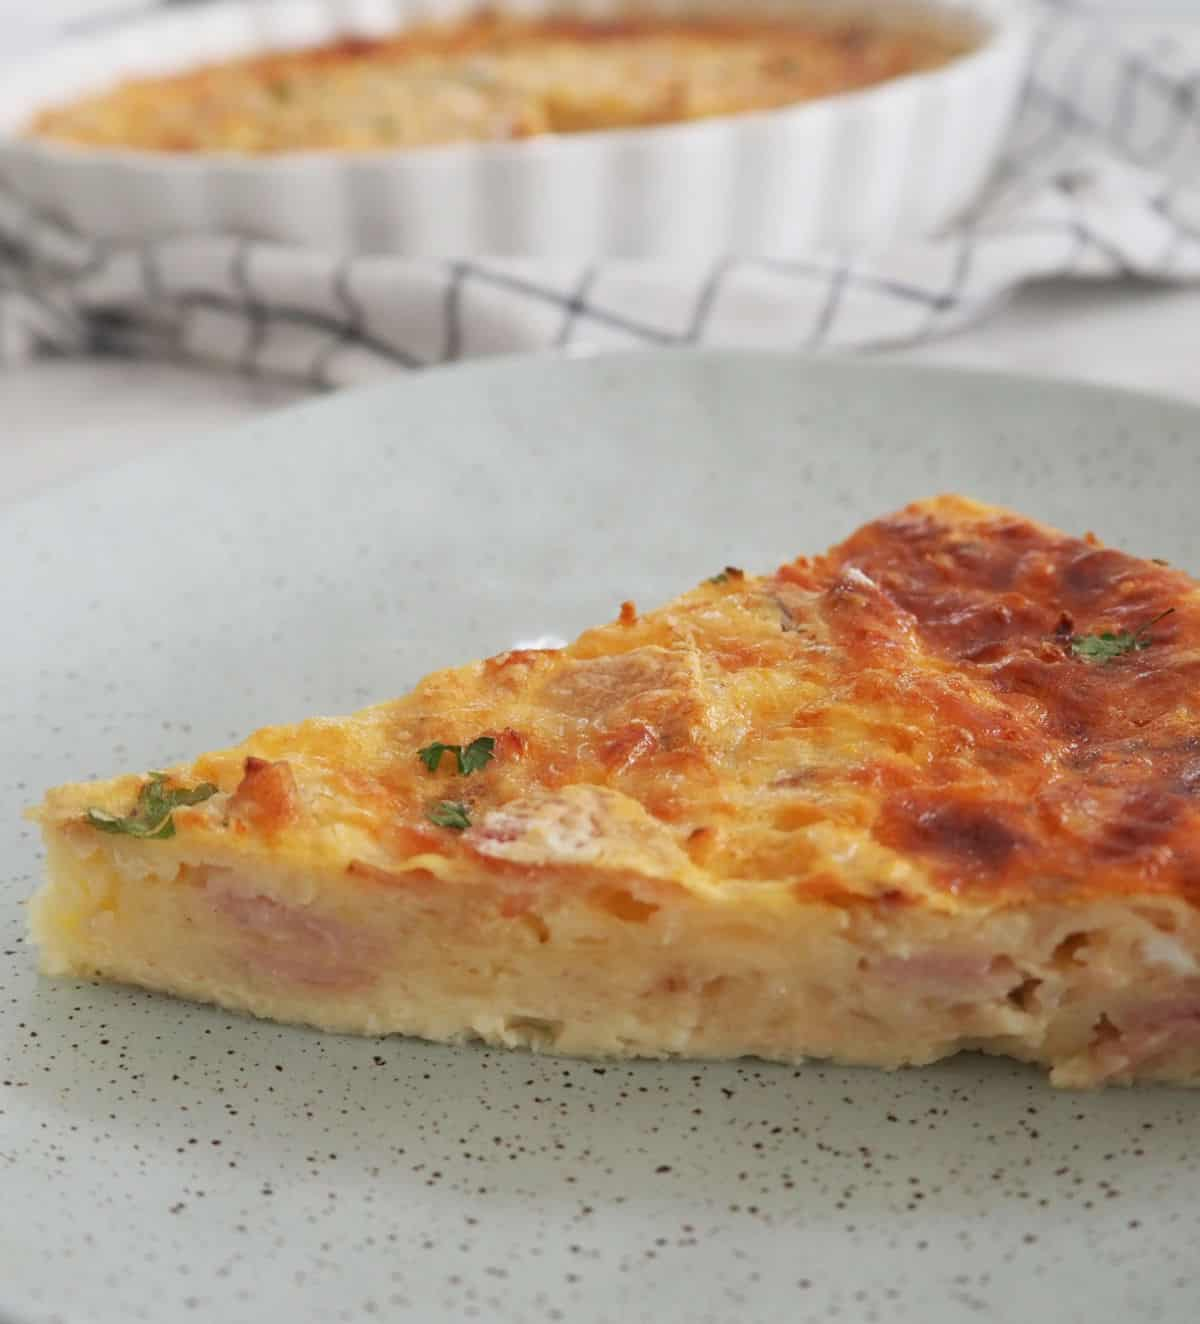 Slice of egg and bacon pie on a green plate